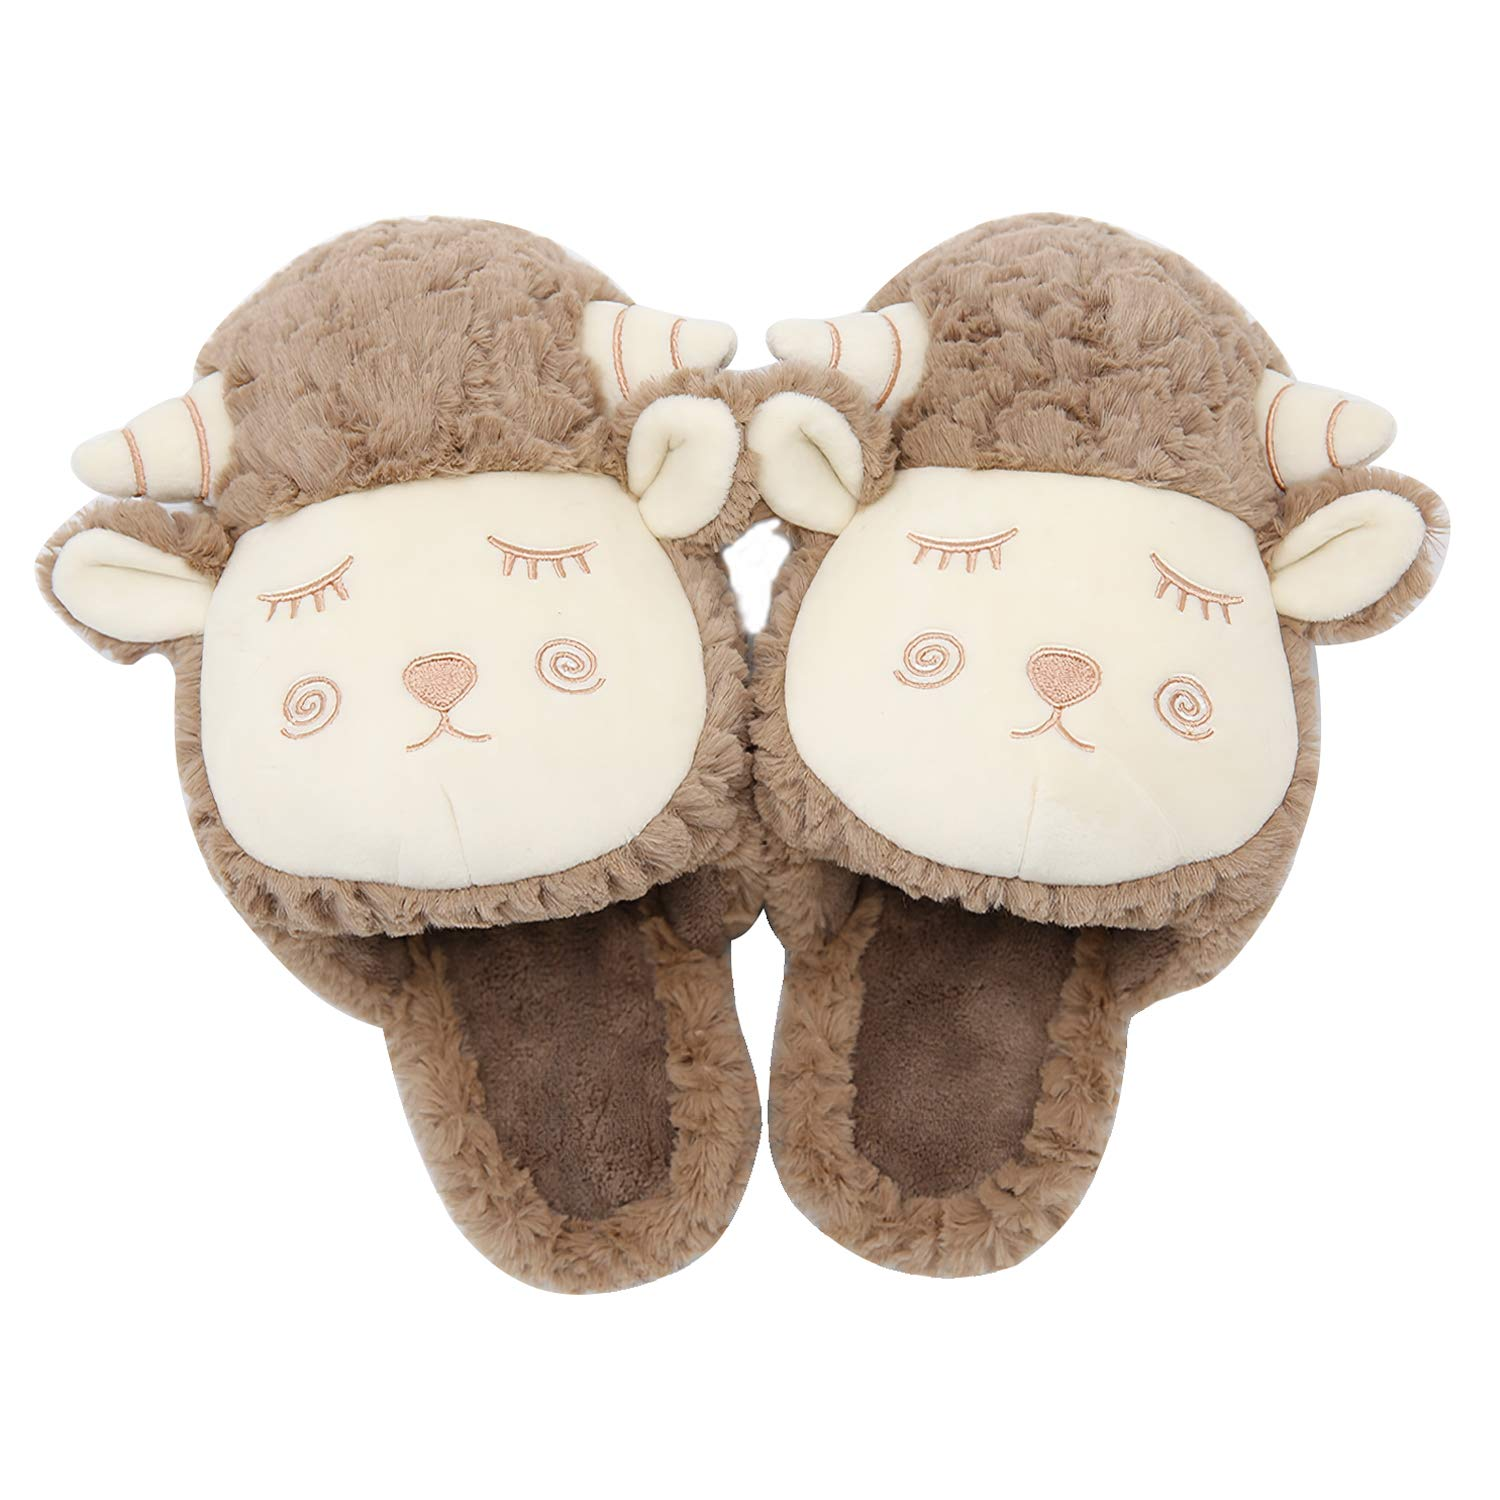 5a9e106e3867 Women s Cute Fuzzy House Slippers - Memory Foam Sheep Slippers Anti Slip  Comfort Plush Slippers Soft Indoor Clog House Shoes